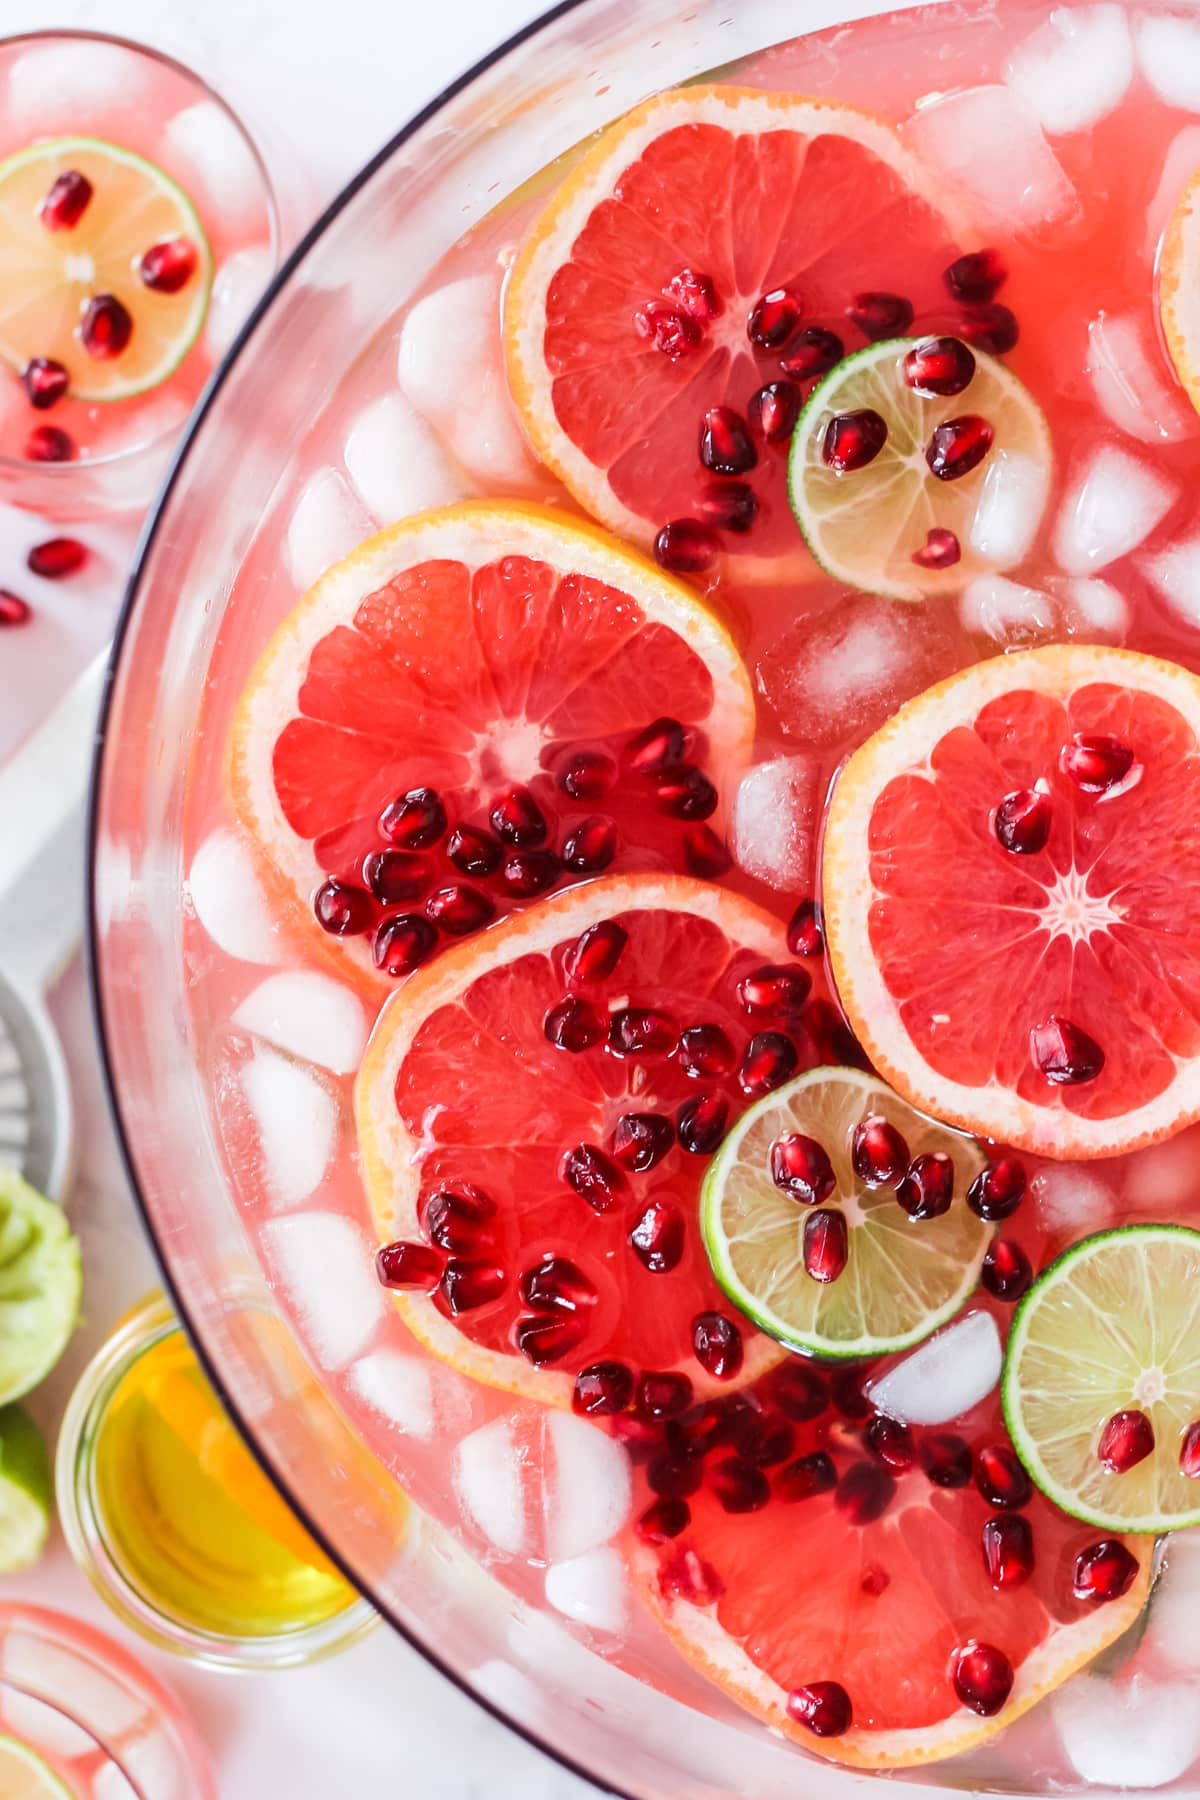 a top down half view of a bowl of grapefruit punch with slices of grapefruit, limes and pomegranate seeds